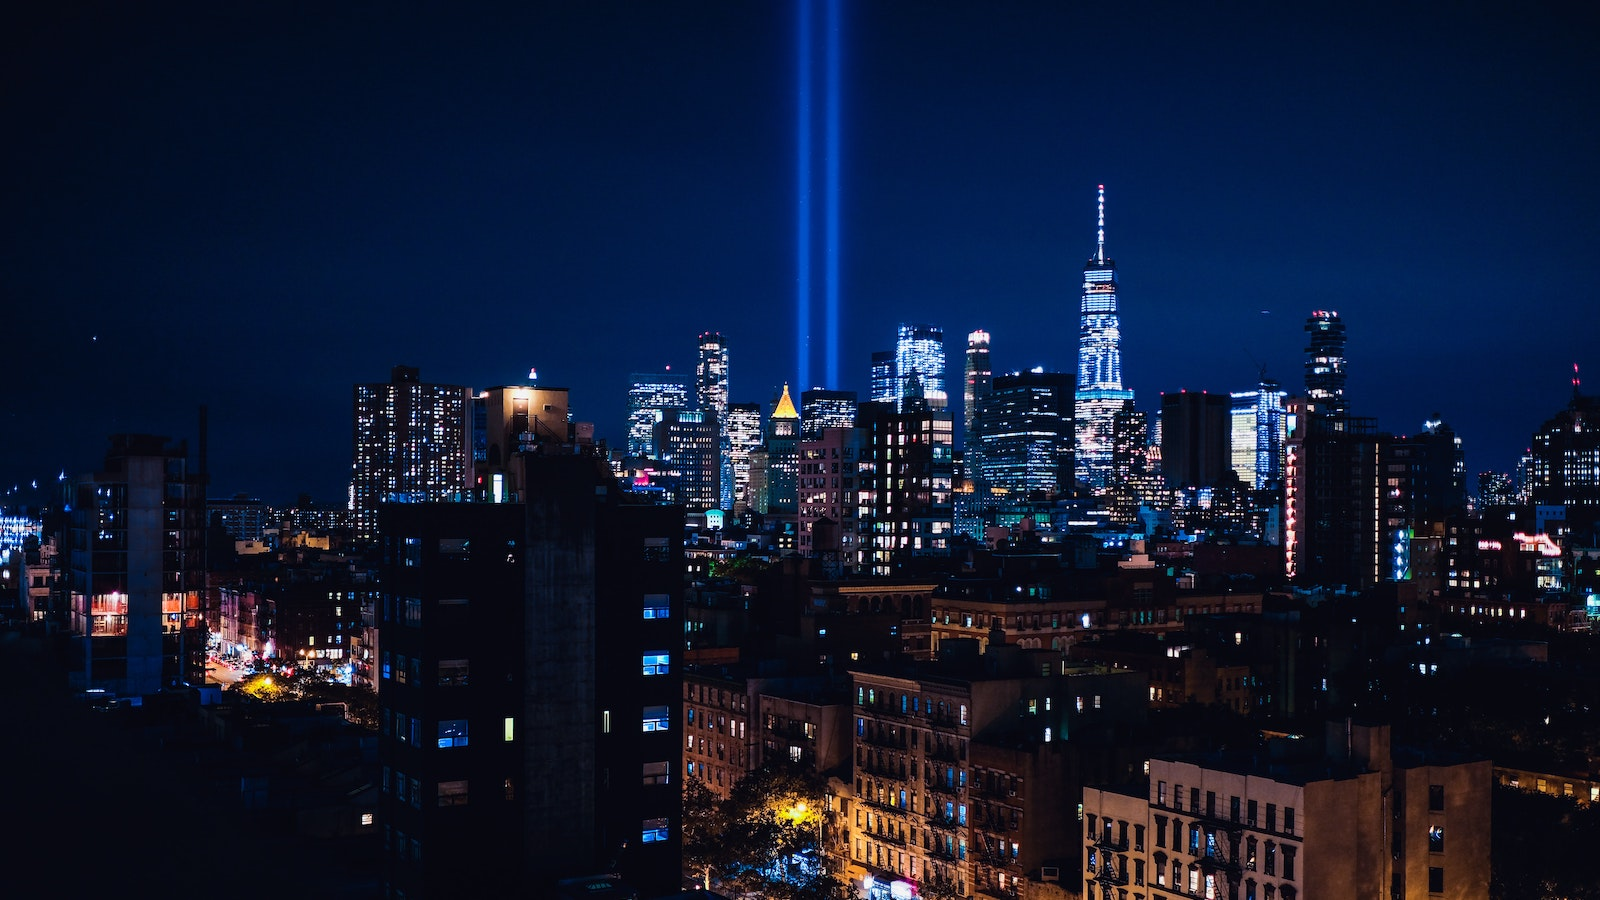 Two beams of light in nighttime sky commemorate the 9/11 attacks